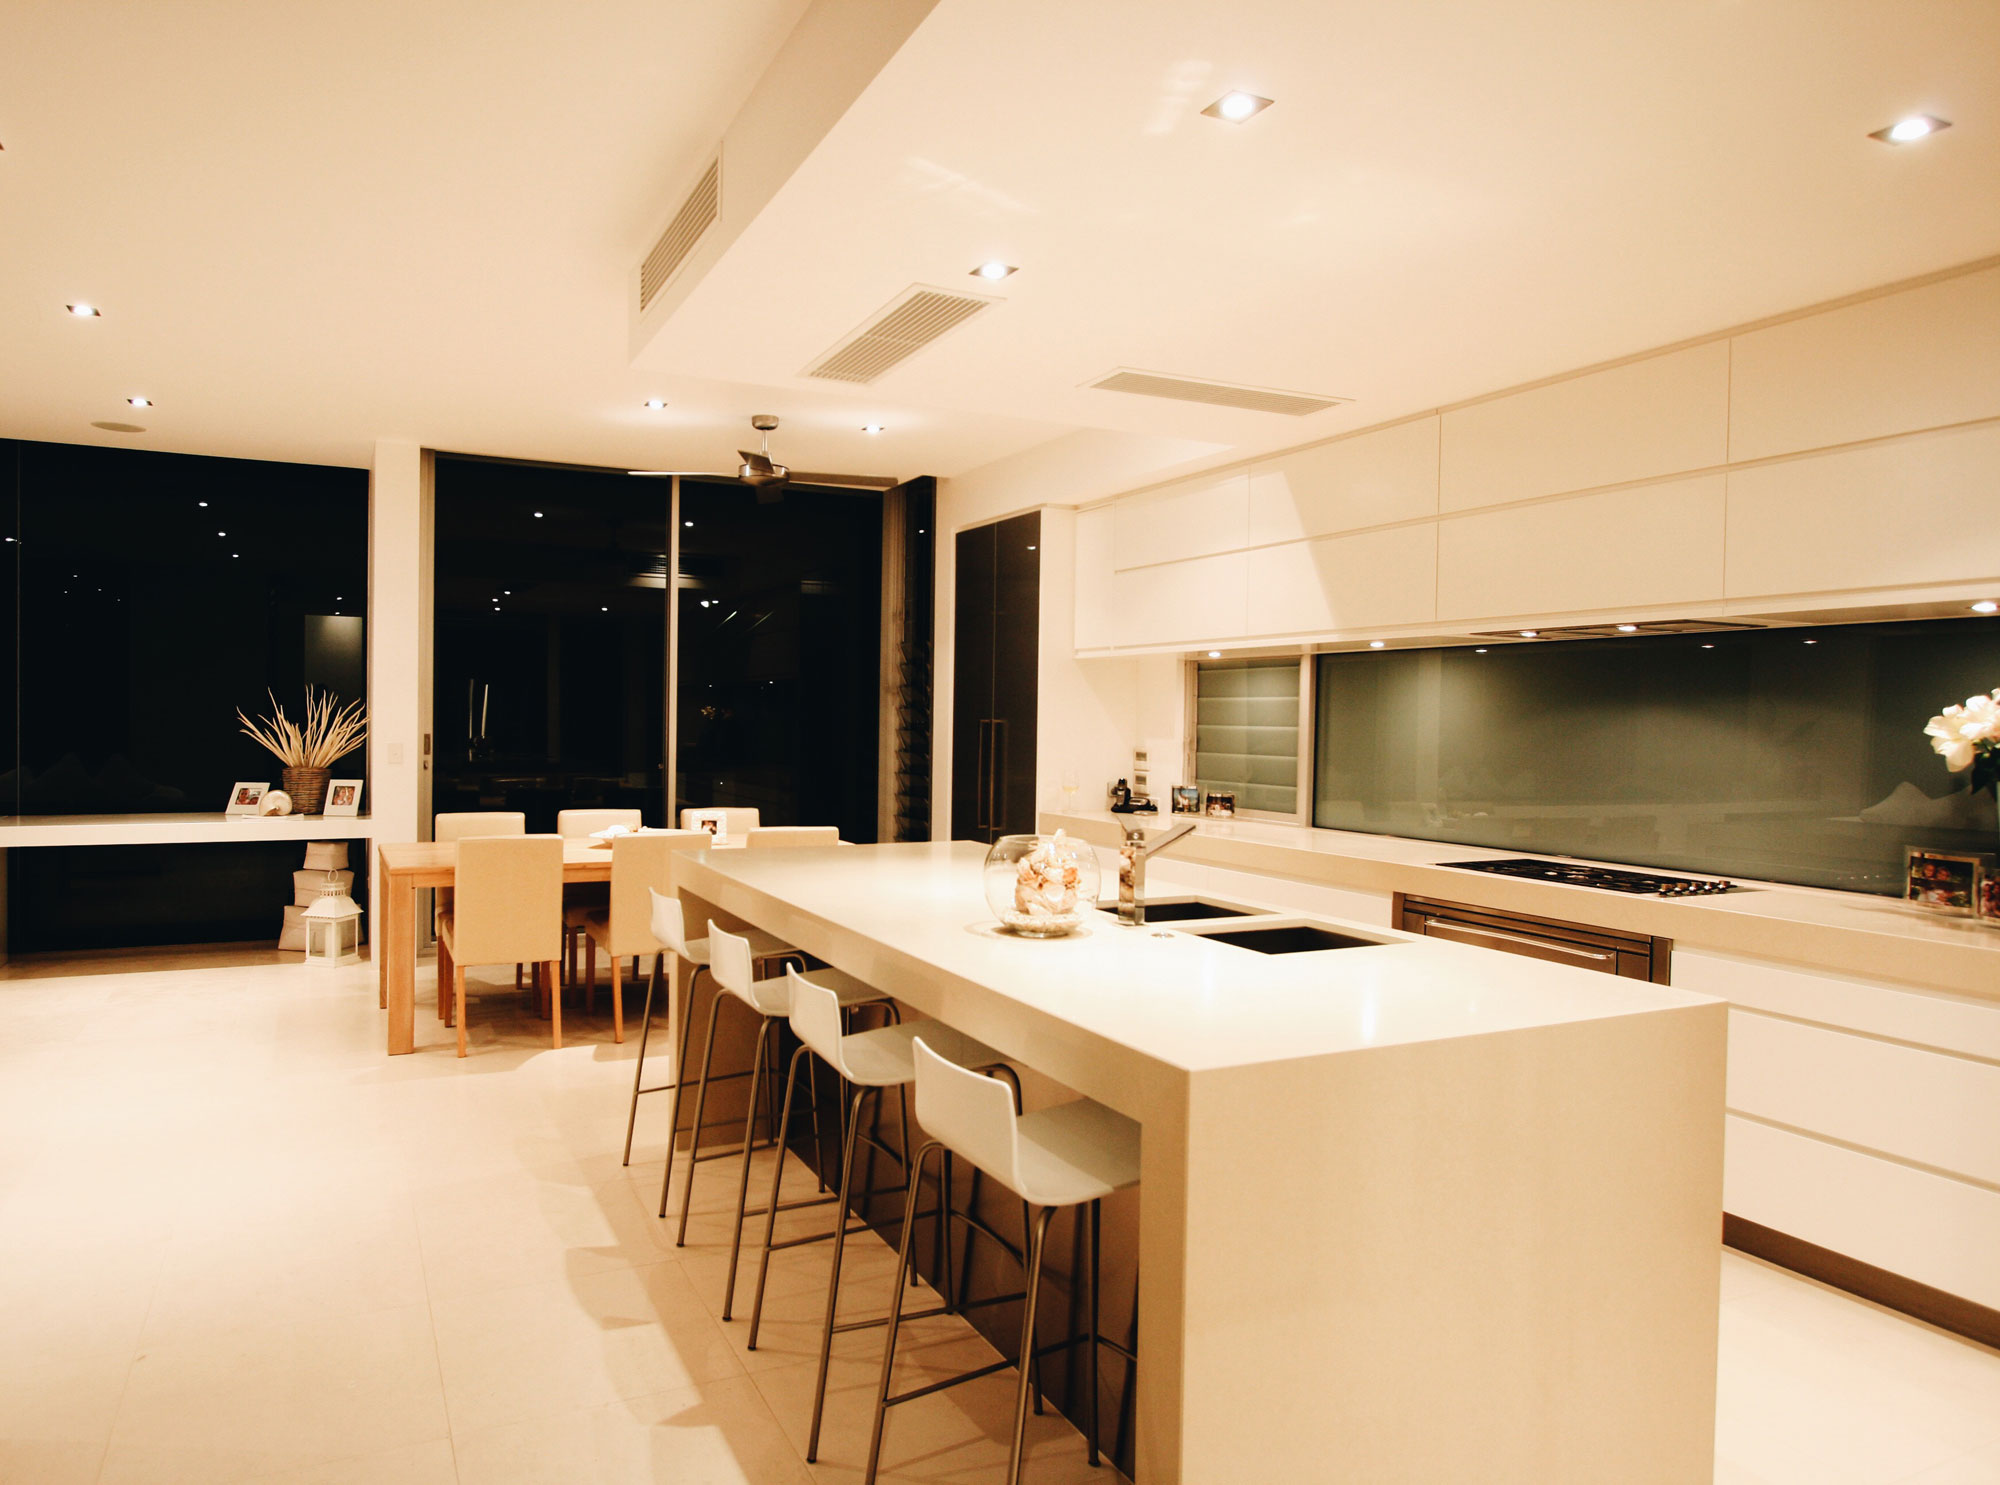 k-house kitchen